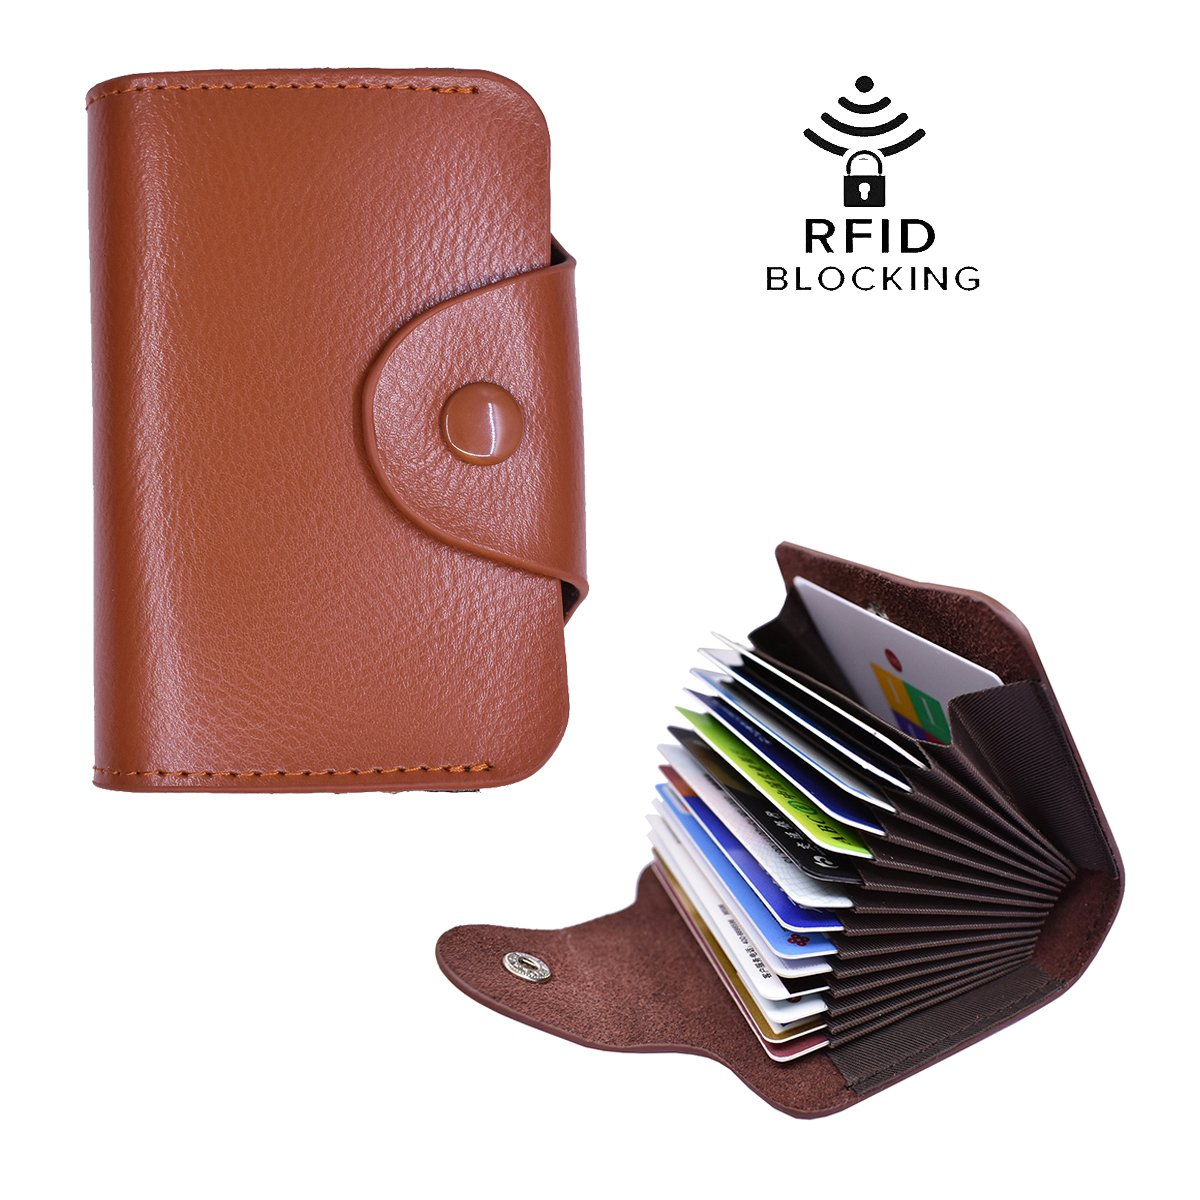 Unisex Genuine Slim Thin Wallet Leather RFID Security Blocking Credit Card Holder Business Name Card Wallet Case for Women and Men (Brown)